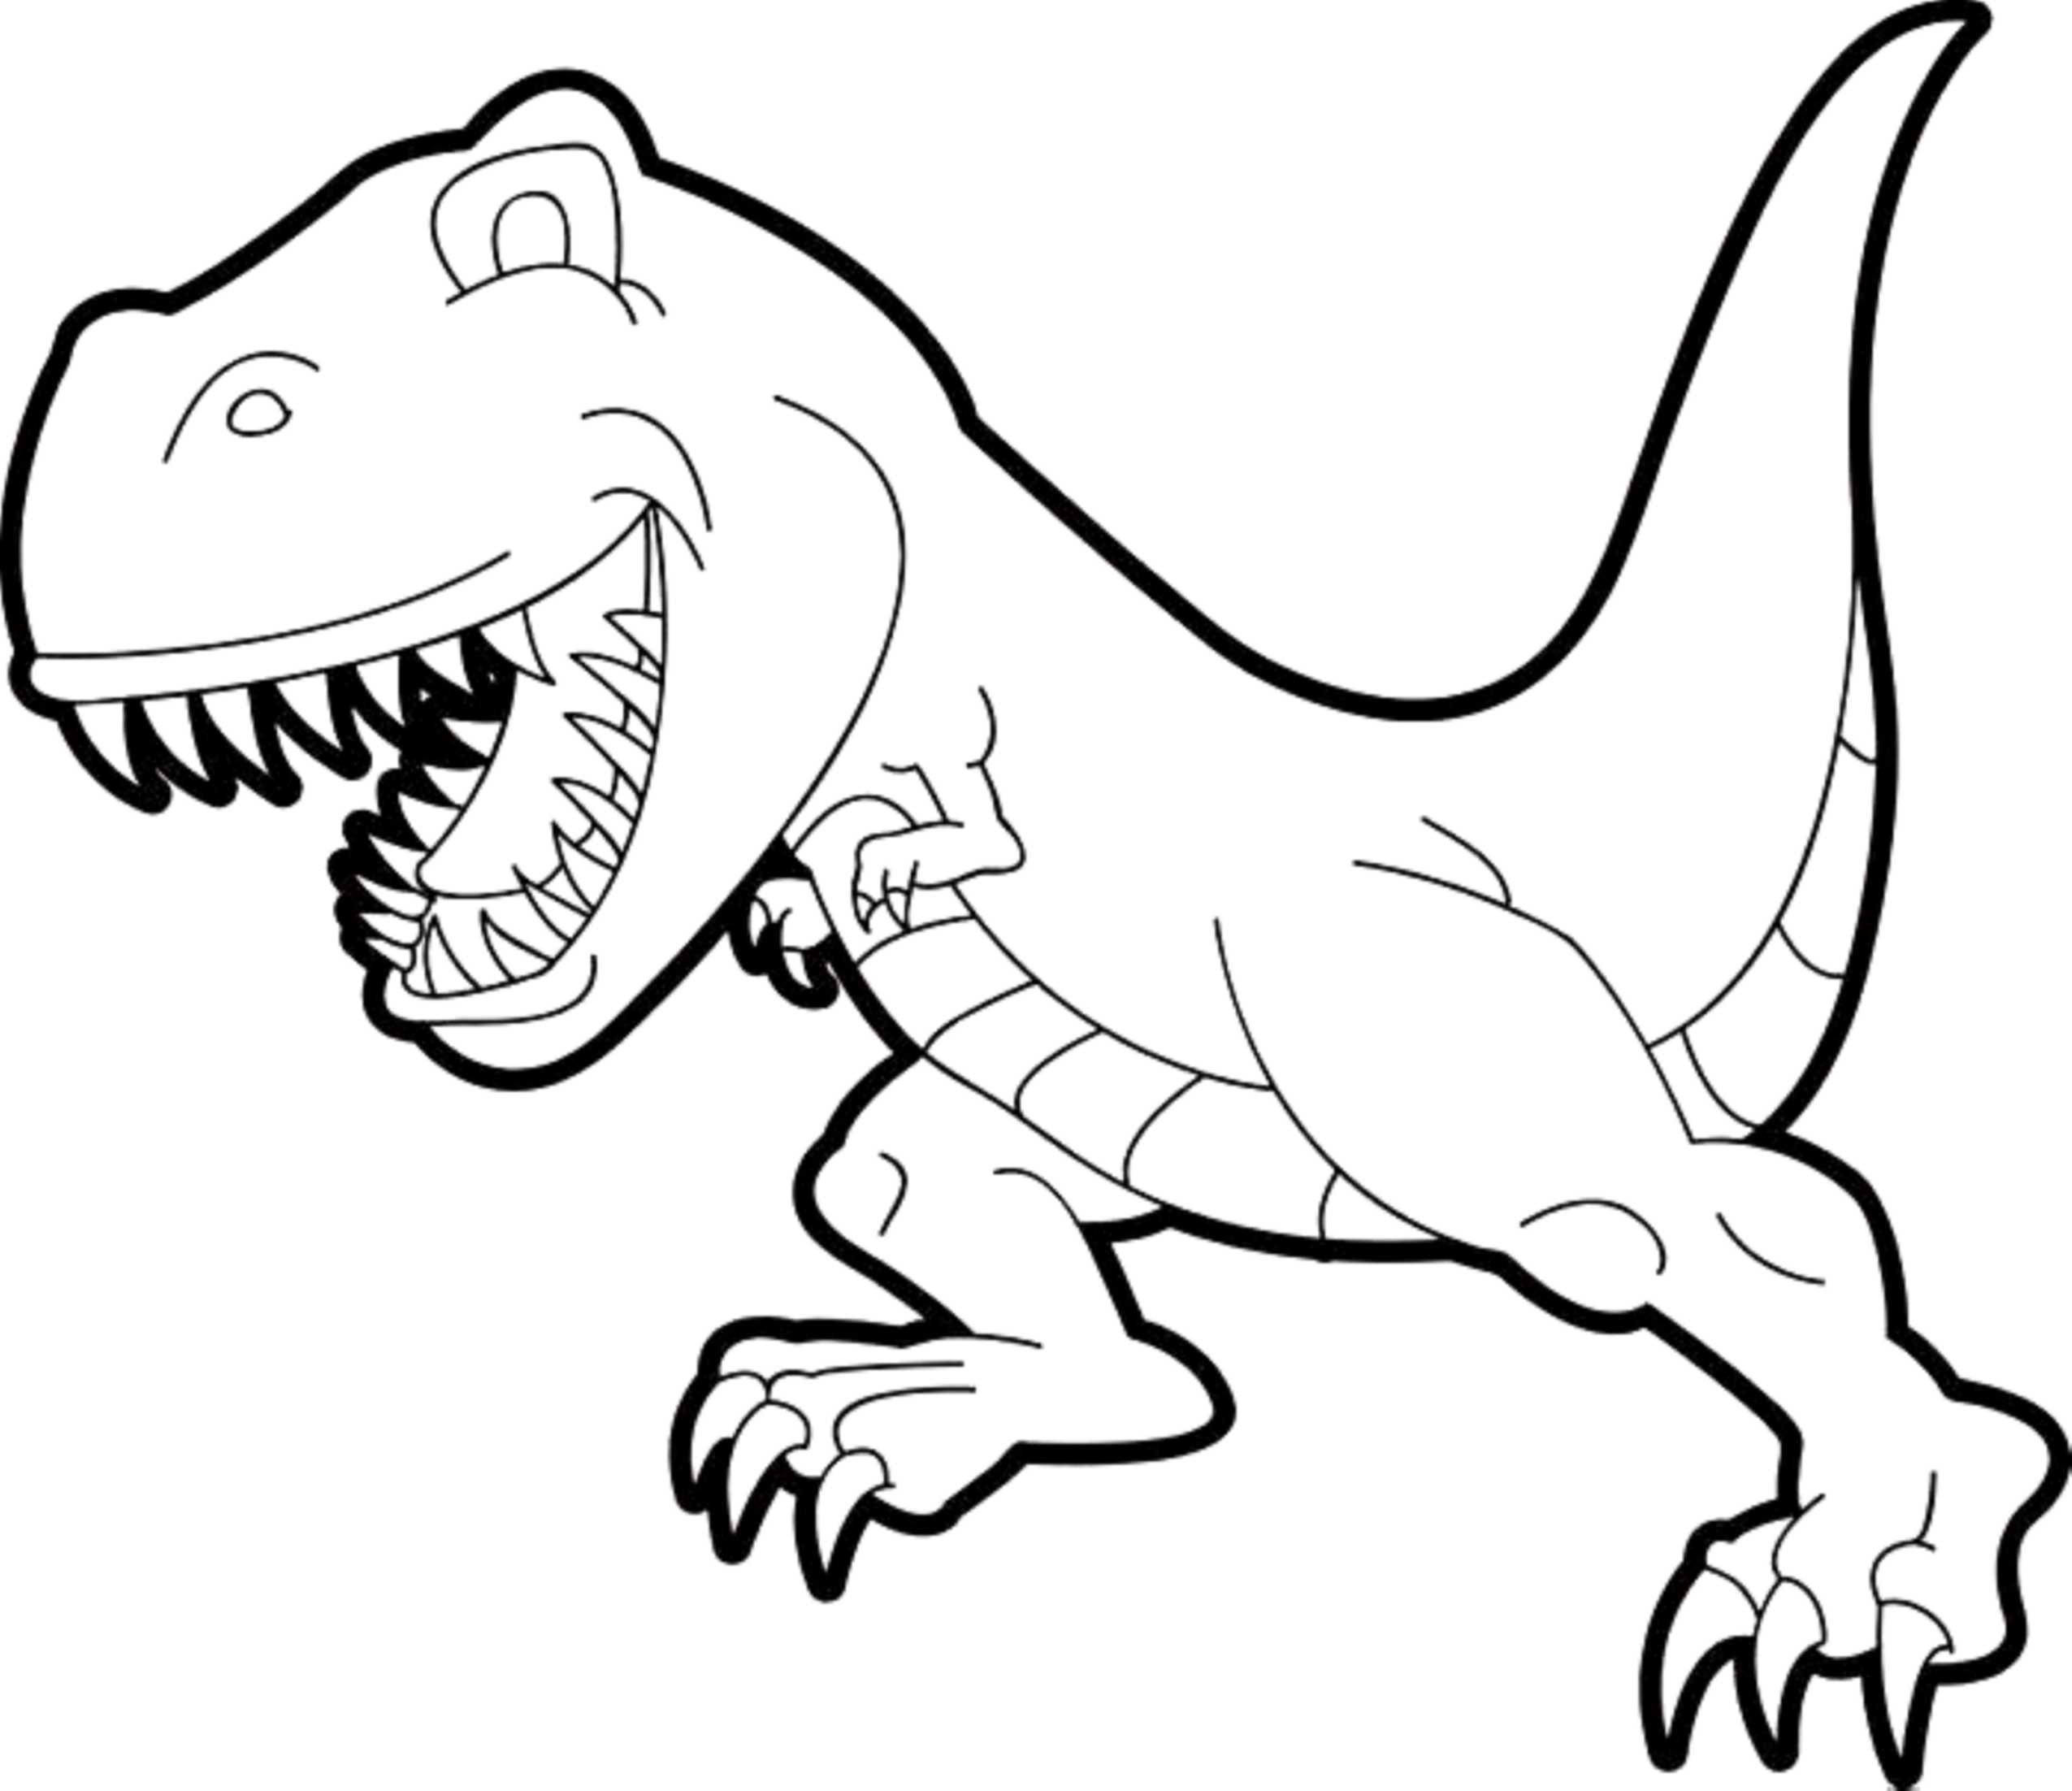 2550x2204 T Rex Skeleton Coloring Page Free Draw To Color